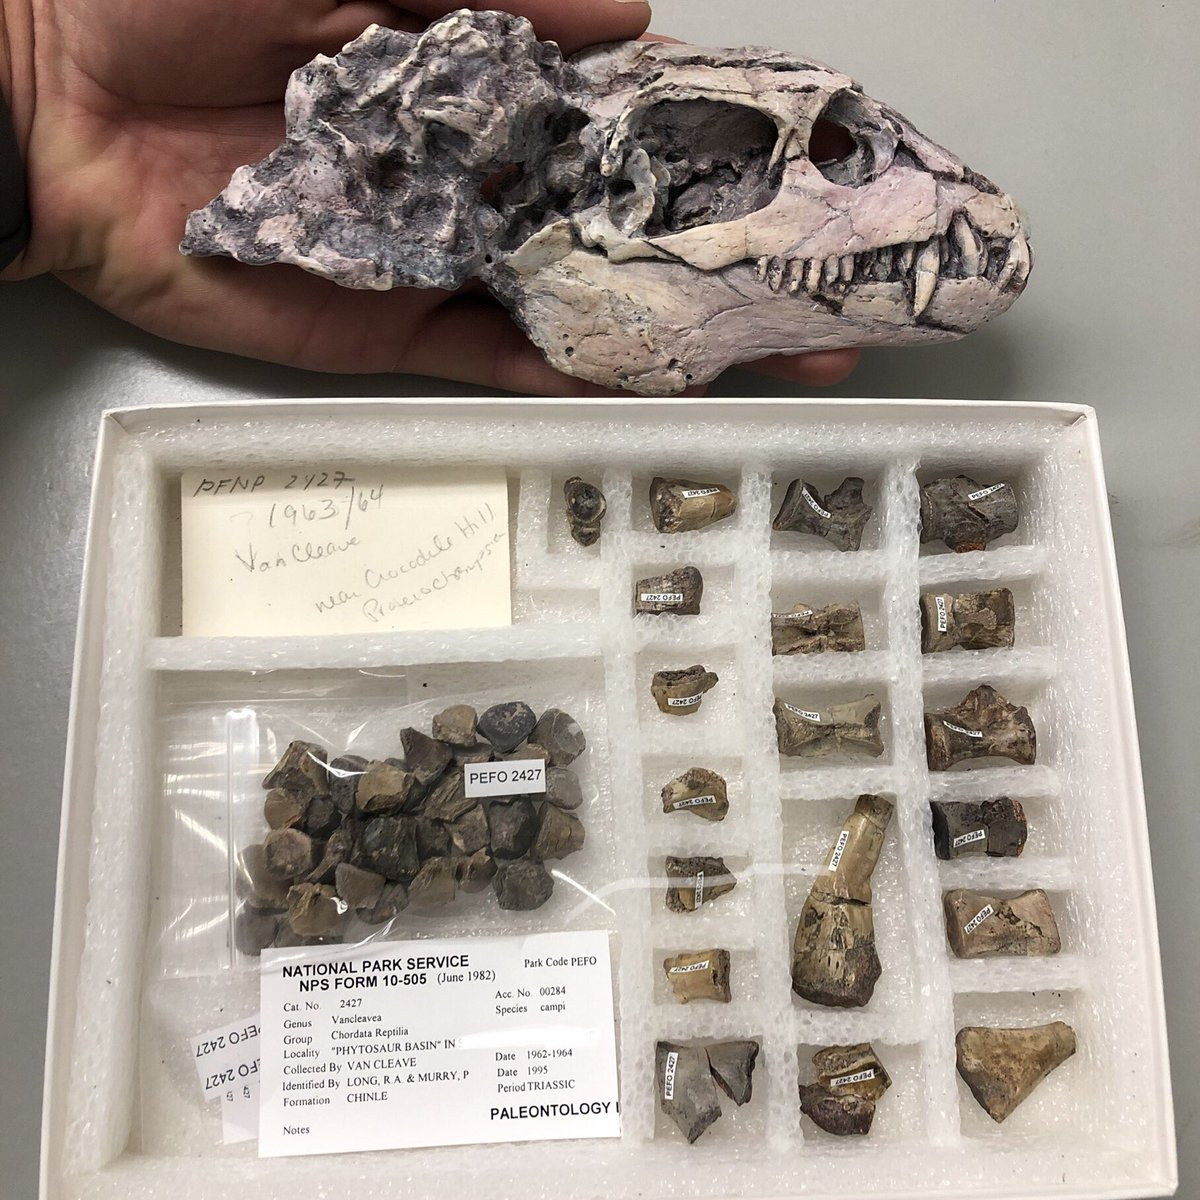 Holotype specimen of Vancleavea campi (below) from @PetrifiedNPS and a cast of a skull from an articulated referred skeleton from @GhostRanchorg, NM. This species of reptile may have lasted over 11 million years during the Triassic, which is far, far too long. #fossilfriday <br>http://pic.twitter.com/AHSdRELrki